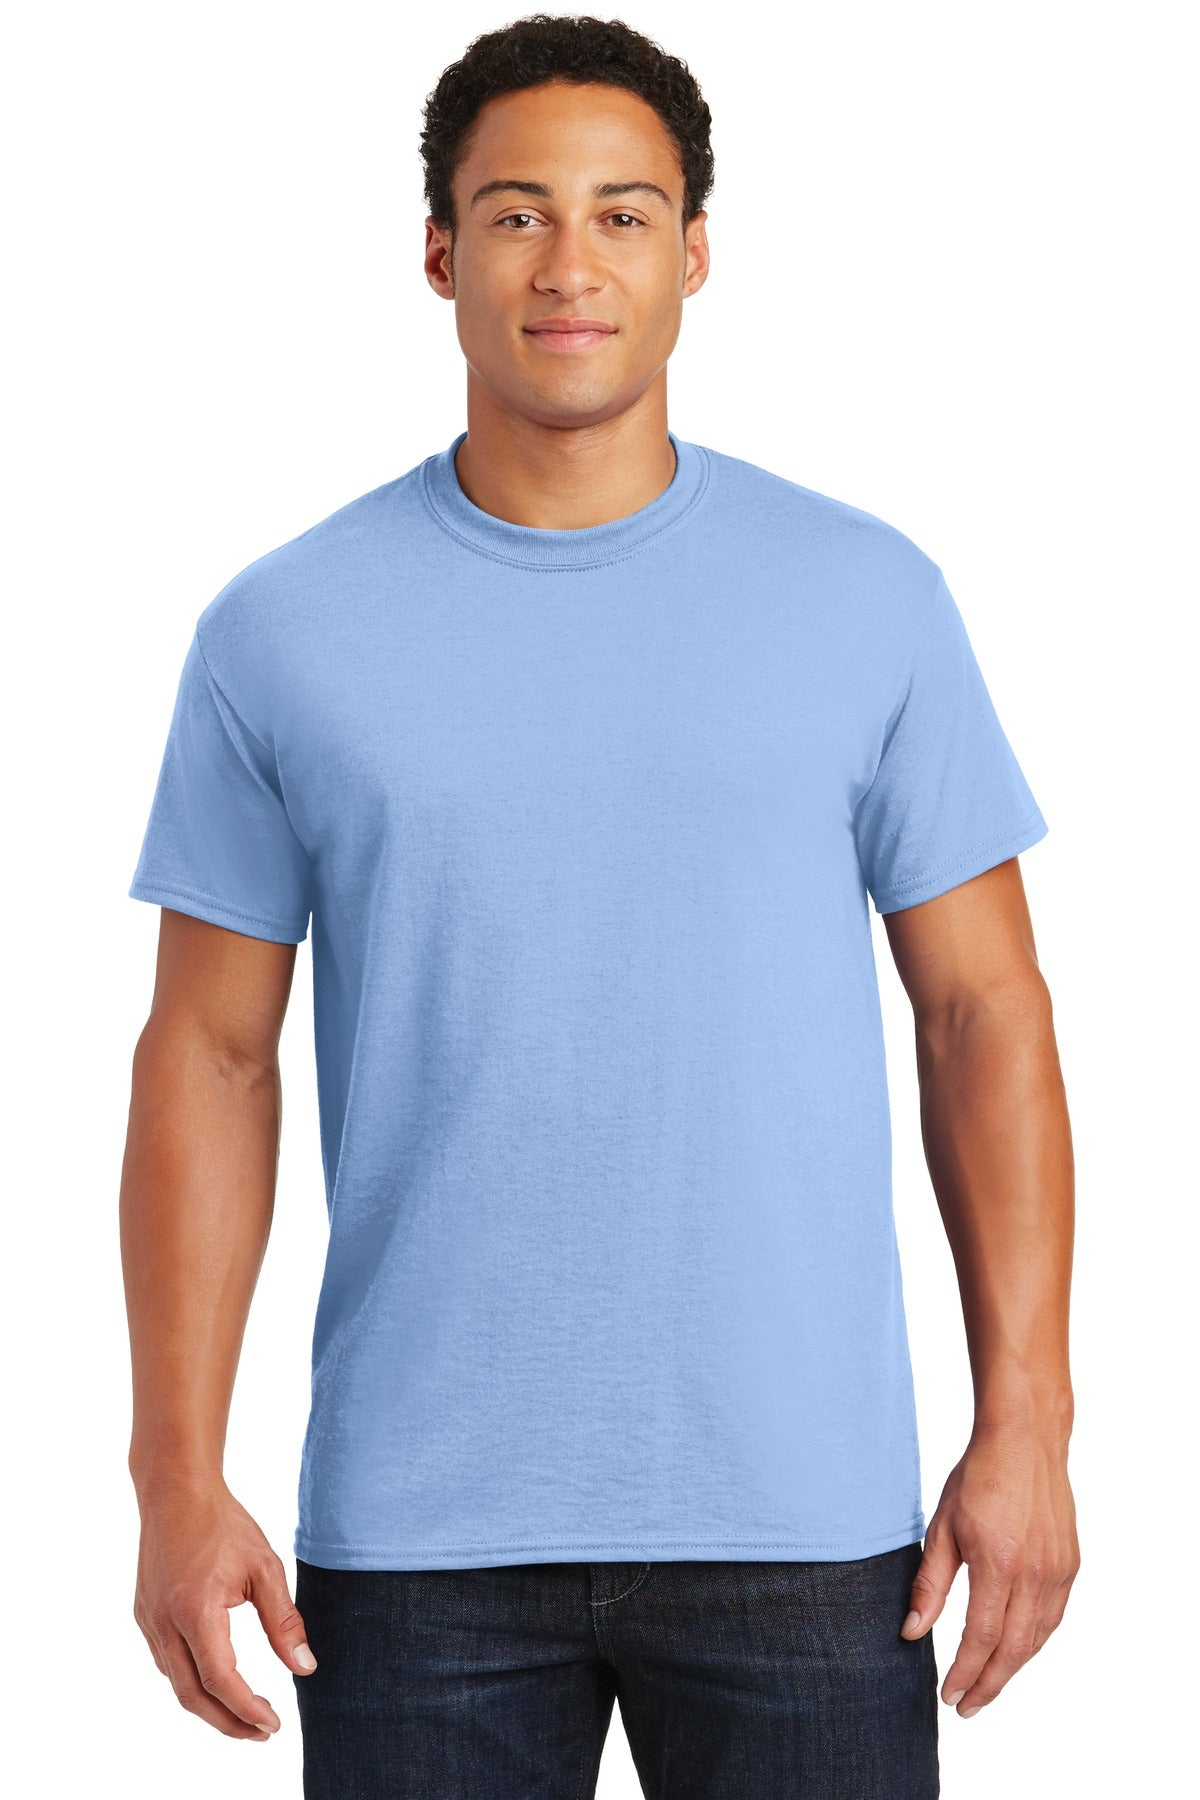 Light Blue Gildan DryBlend 50 Cotton/50 Poly T-Shirt.